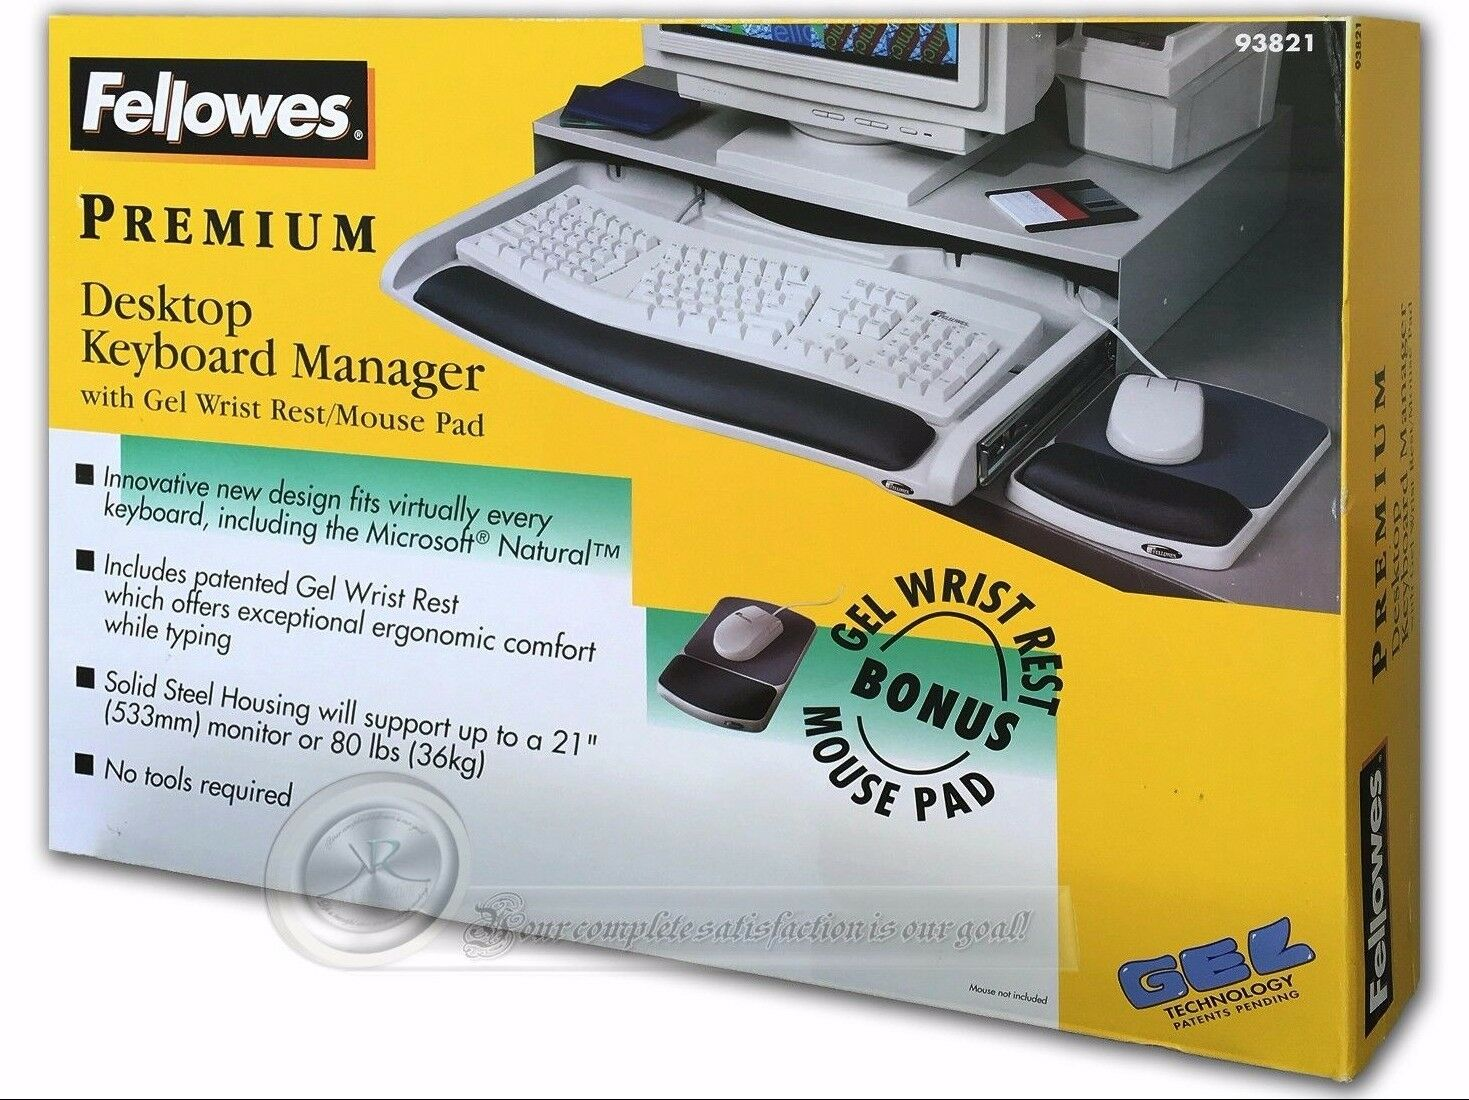 Fellowes 93821 Premium Desktop Keyboard Manager with Gel Wrist and Mouse Pad NEW